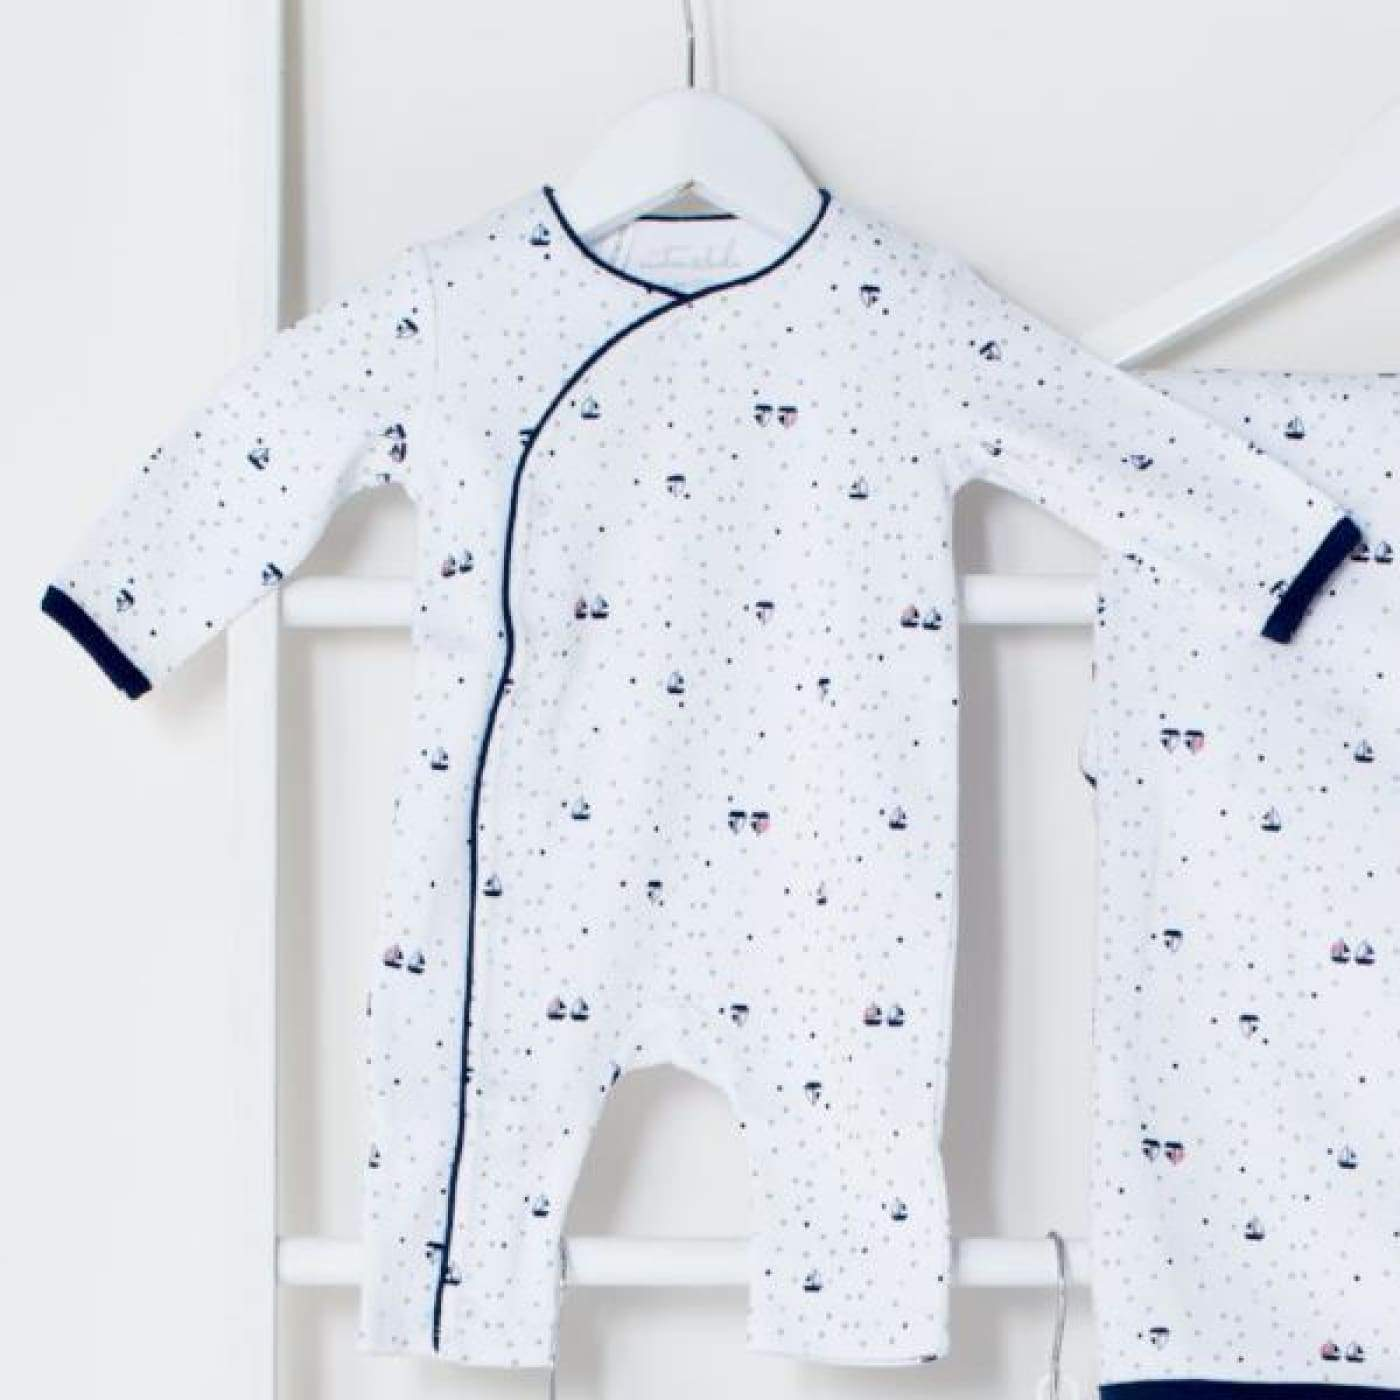 Emotion & Kids Crossover - Yachts Prem 0-3M - BABY & TODDLER CLOTHING - BODYSUITS/SETS/MIX-MATCH